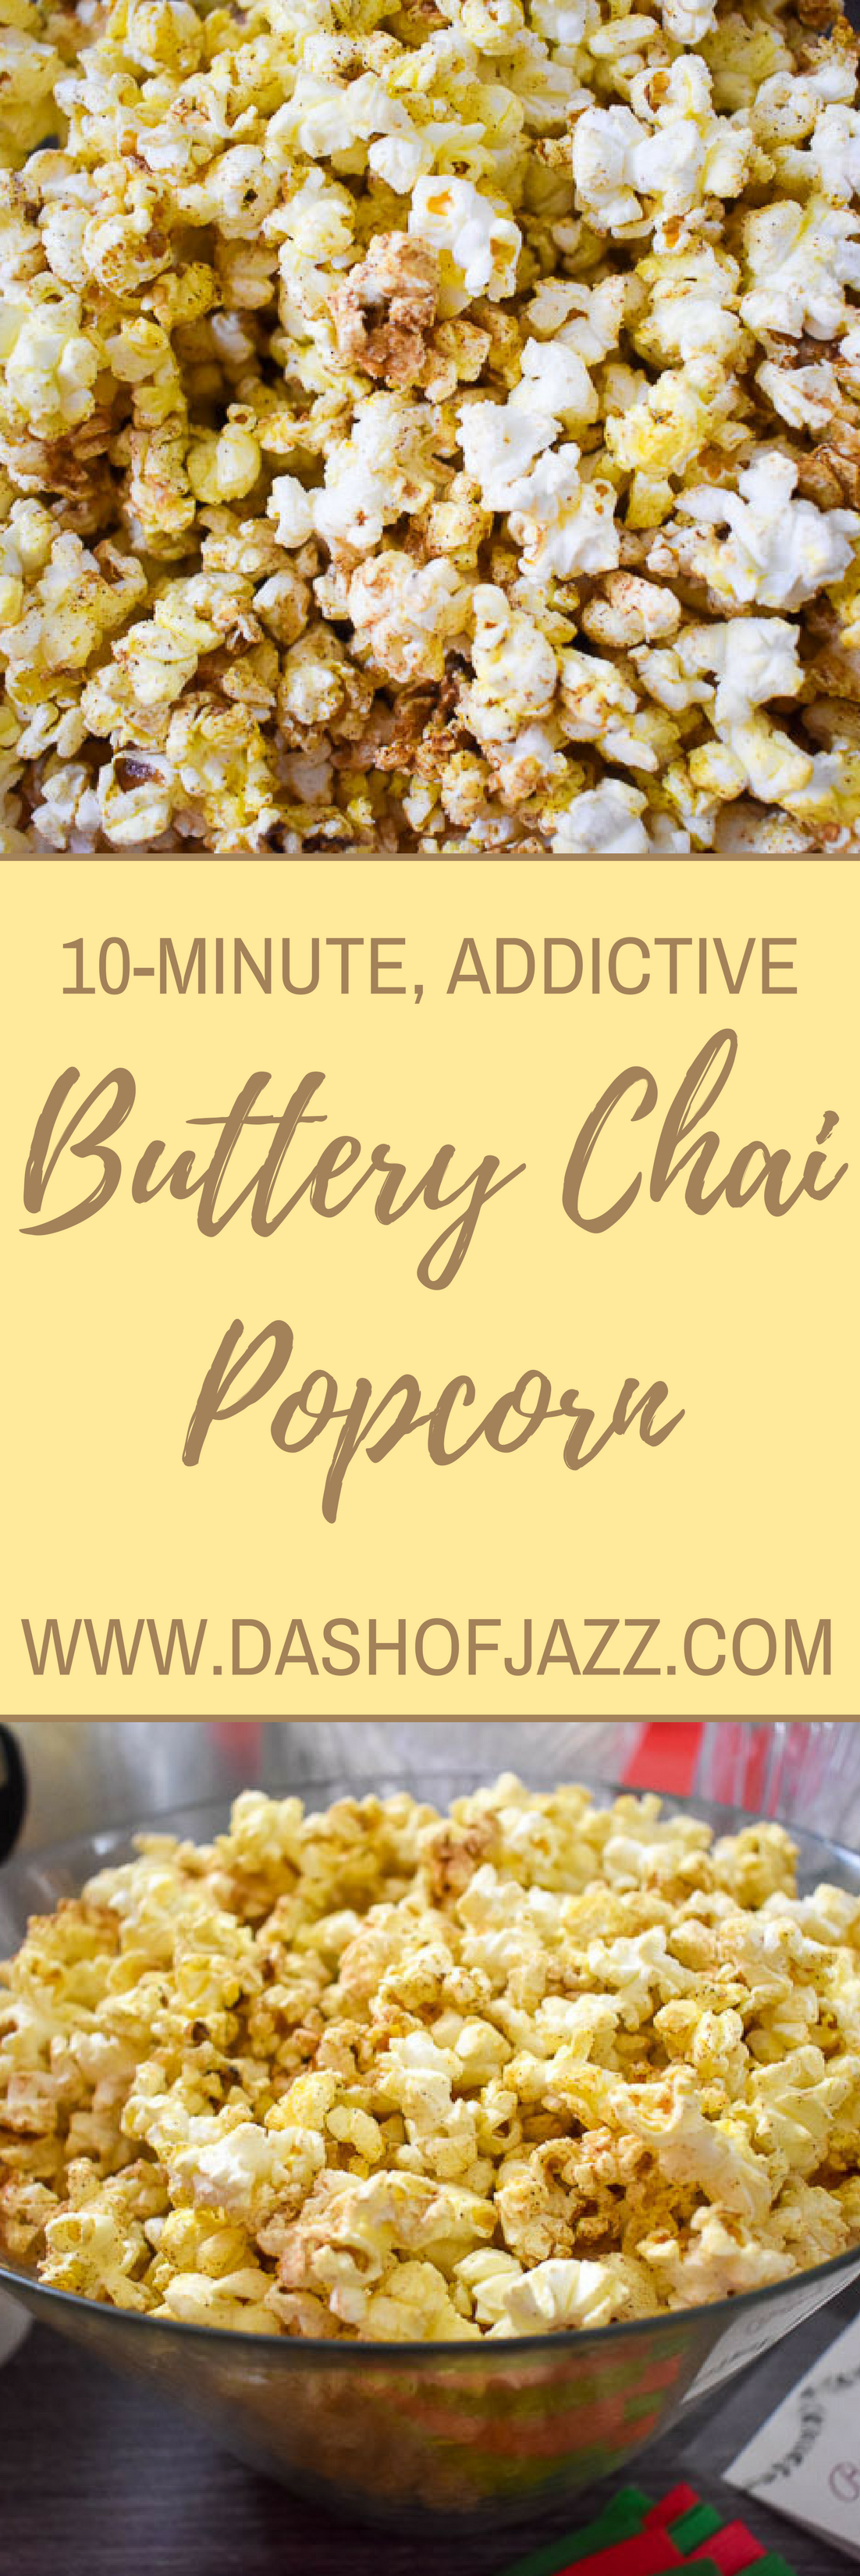 This buttery chai popcorn is a simple yet flavorful, 10-minute snack perfect for anything from a Netflix and chill session to random snacking. Recipe by Dash of Jazz